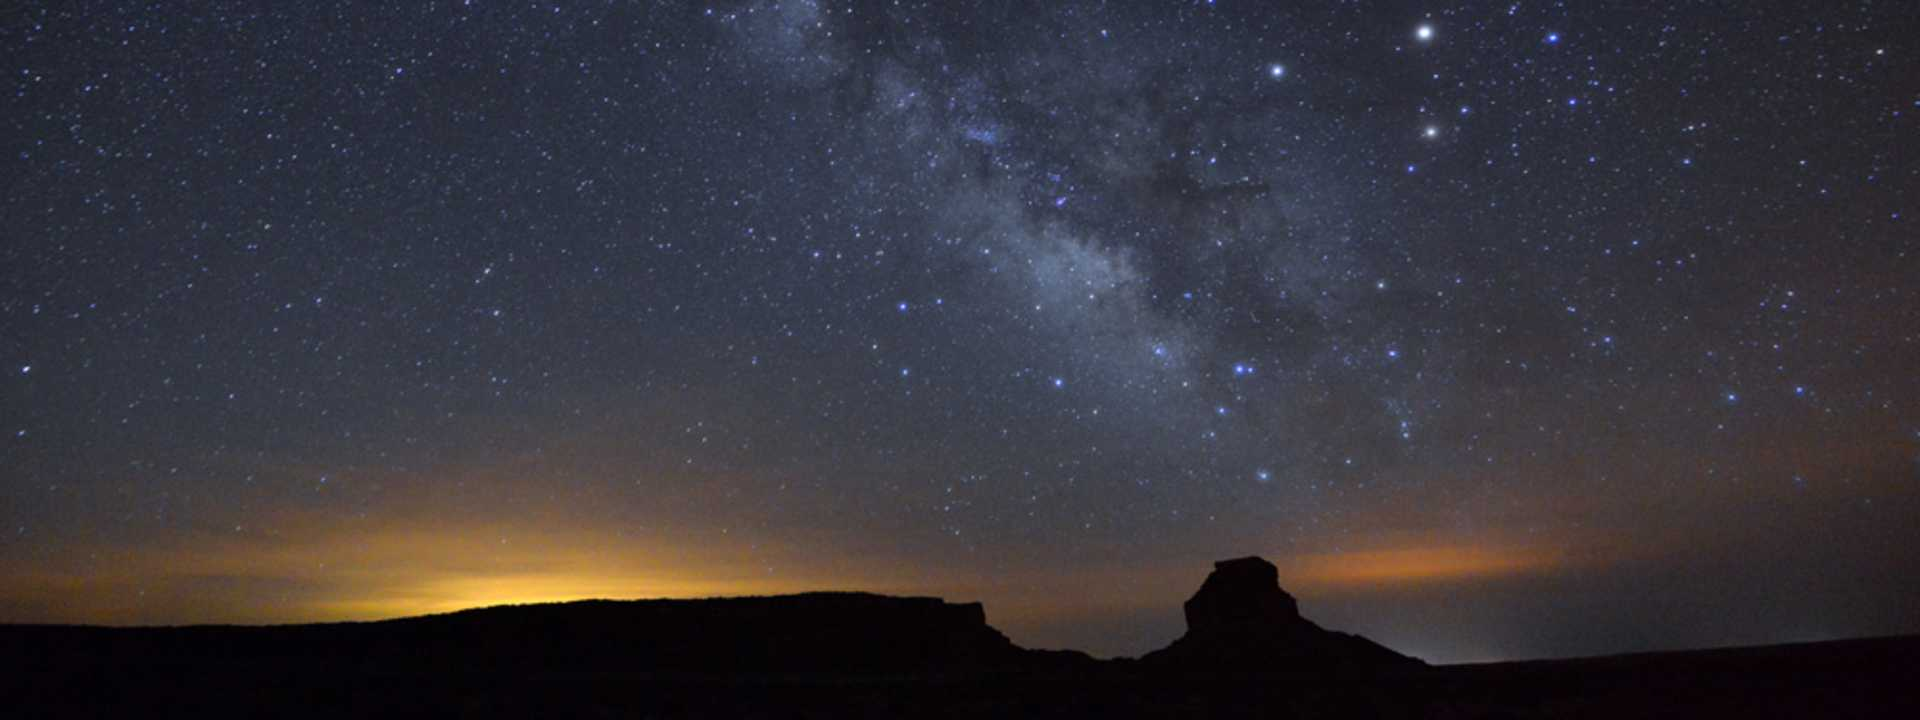 Chaco Canyon at night